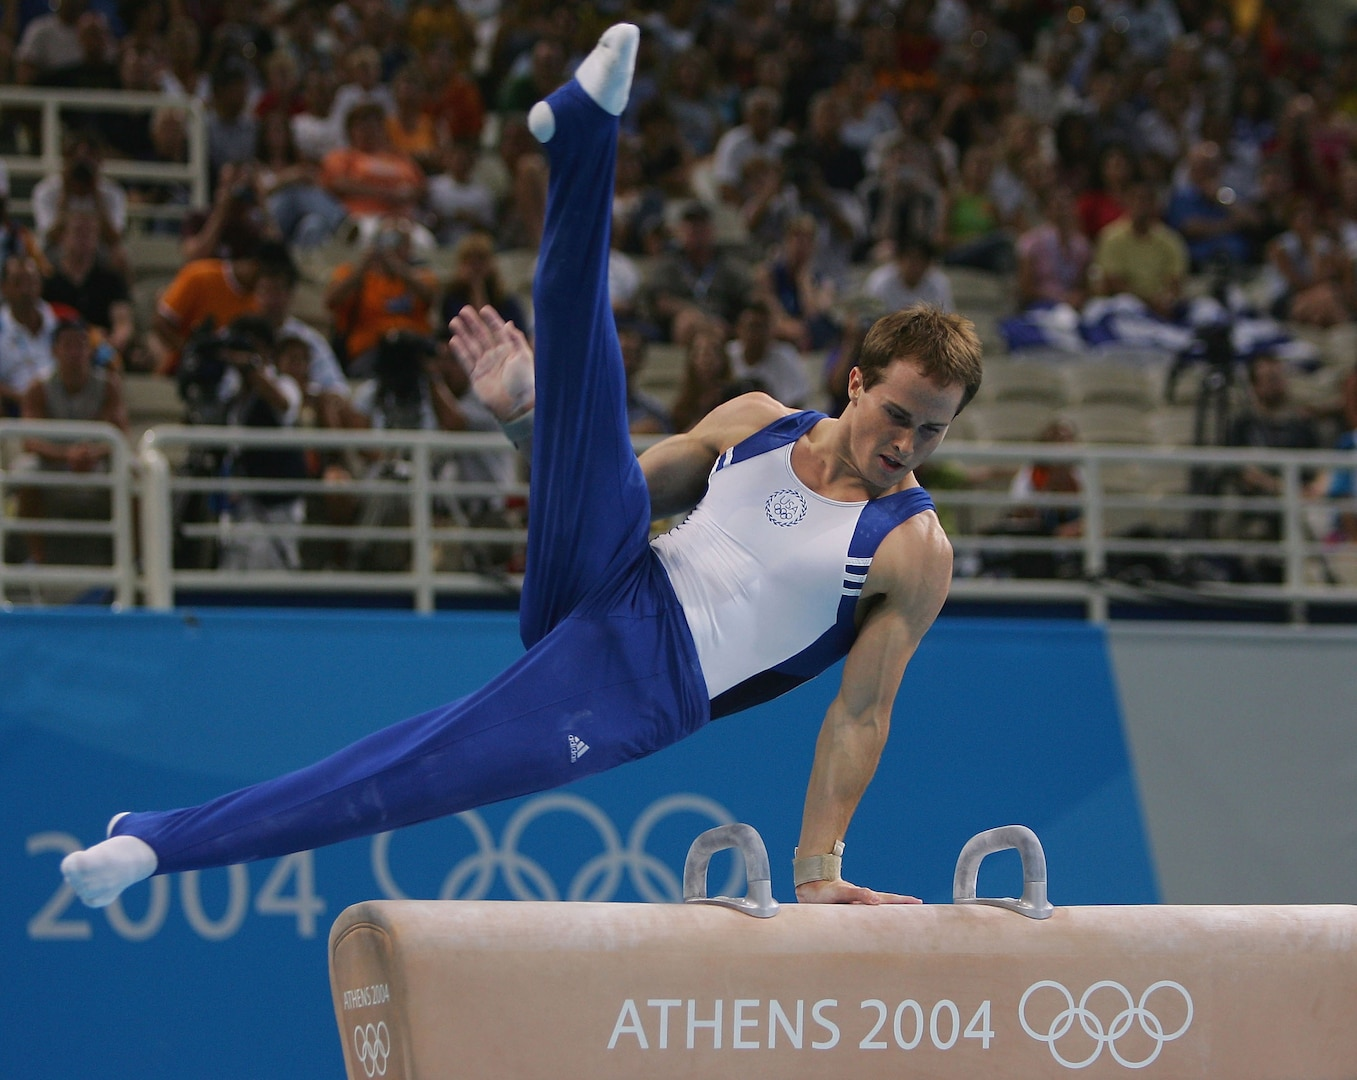 Paul Hamm competes during the pommel horse final during the Athens 2004 Summer Olympic Games.